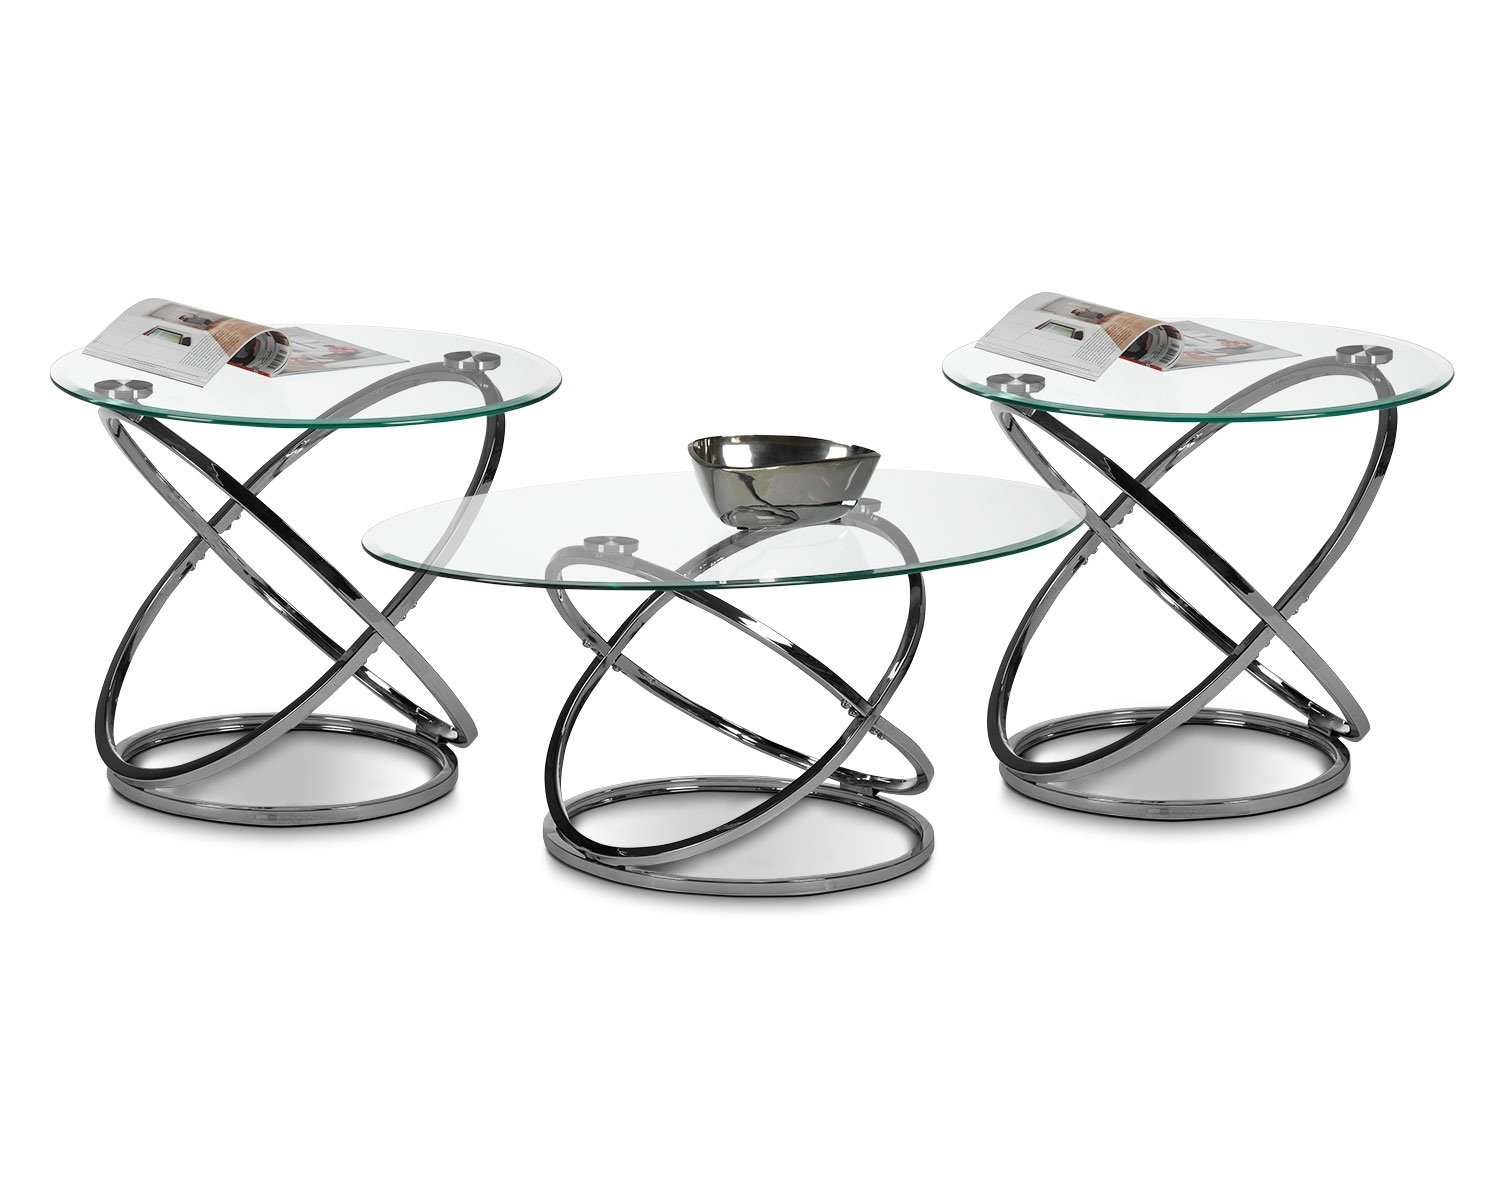 The Axis Table Collection